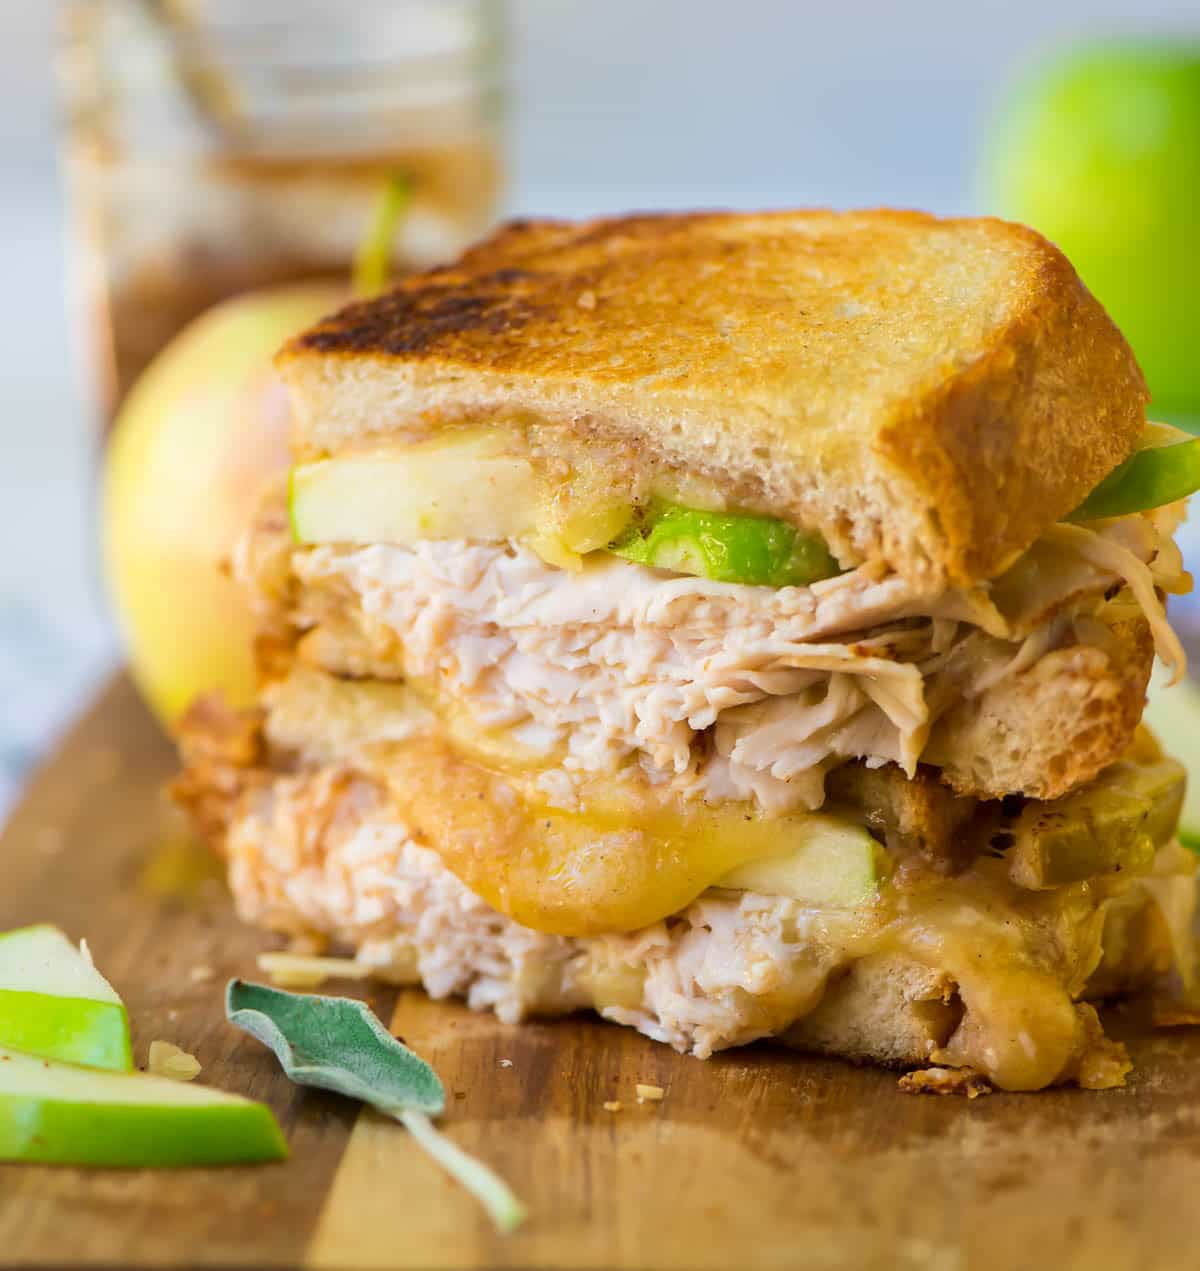 Apple Grilled Cheese with Turkey recipe